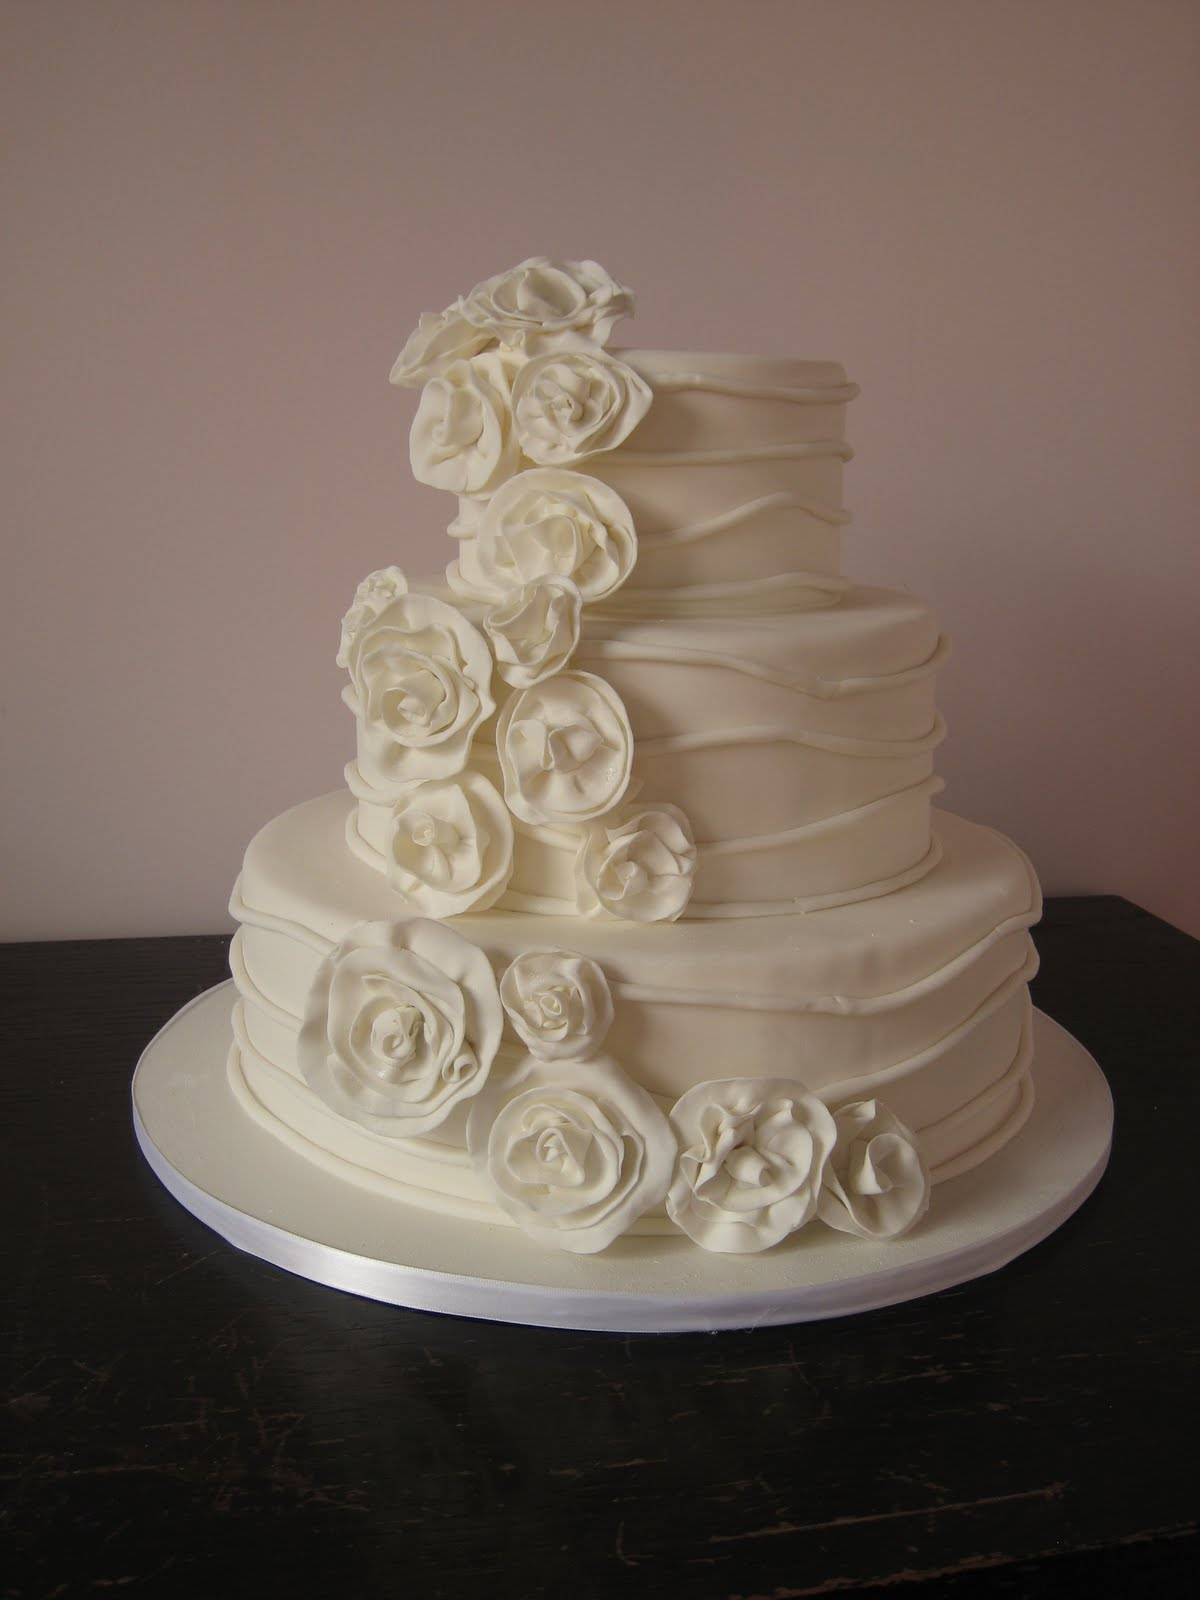 Jewel Osco Bakery Cake Ideas And Designs